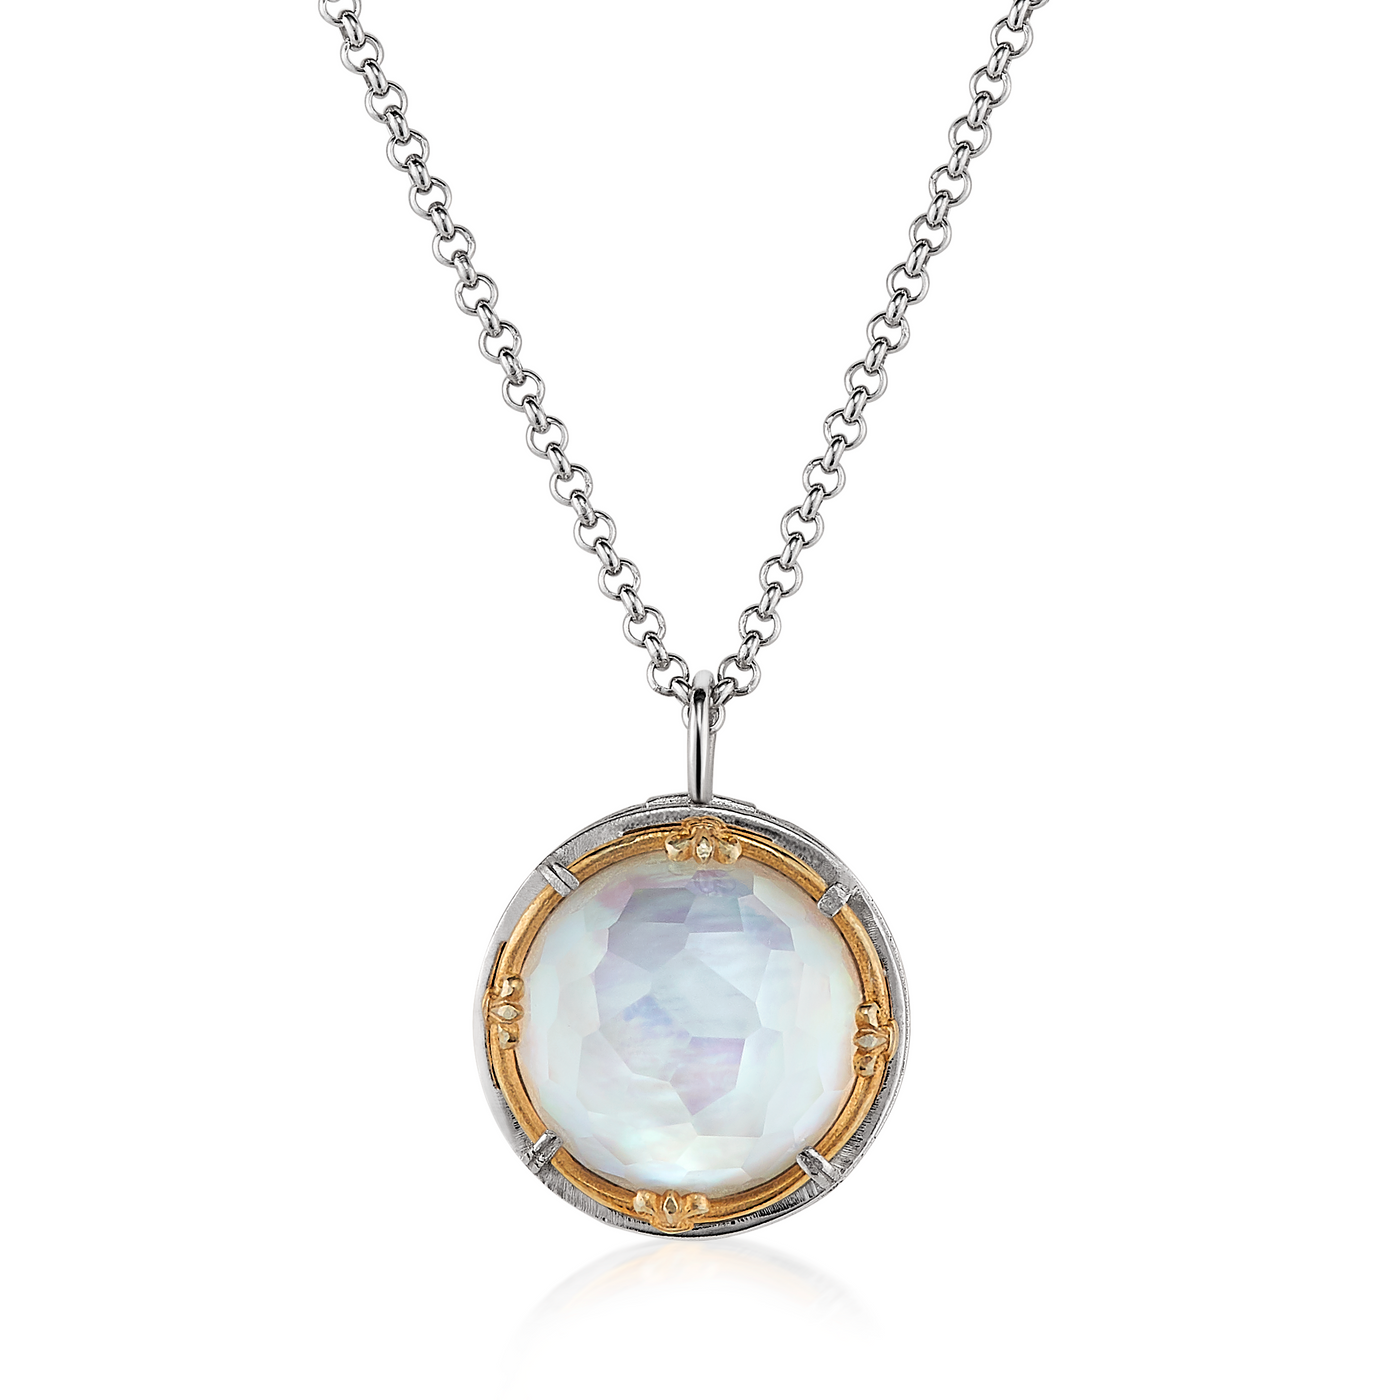 AT 817AT-MOTHER OF PEARL NECKLACE